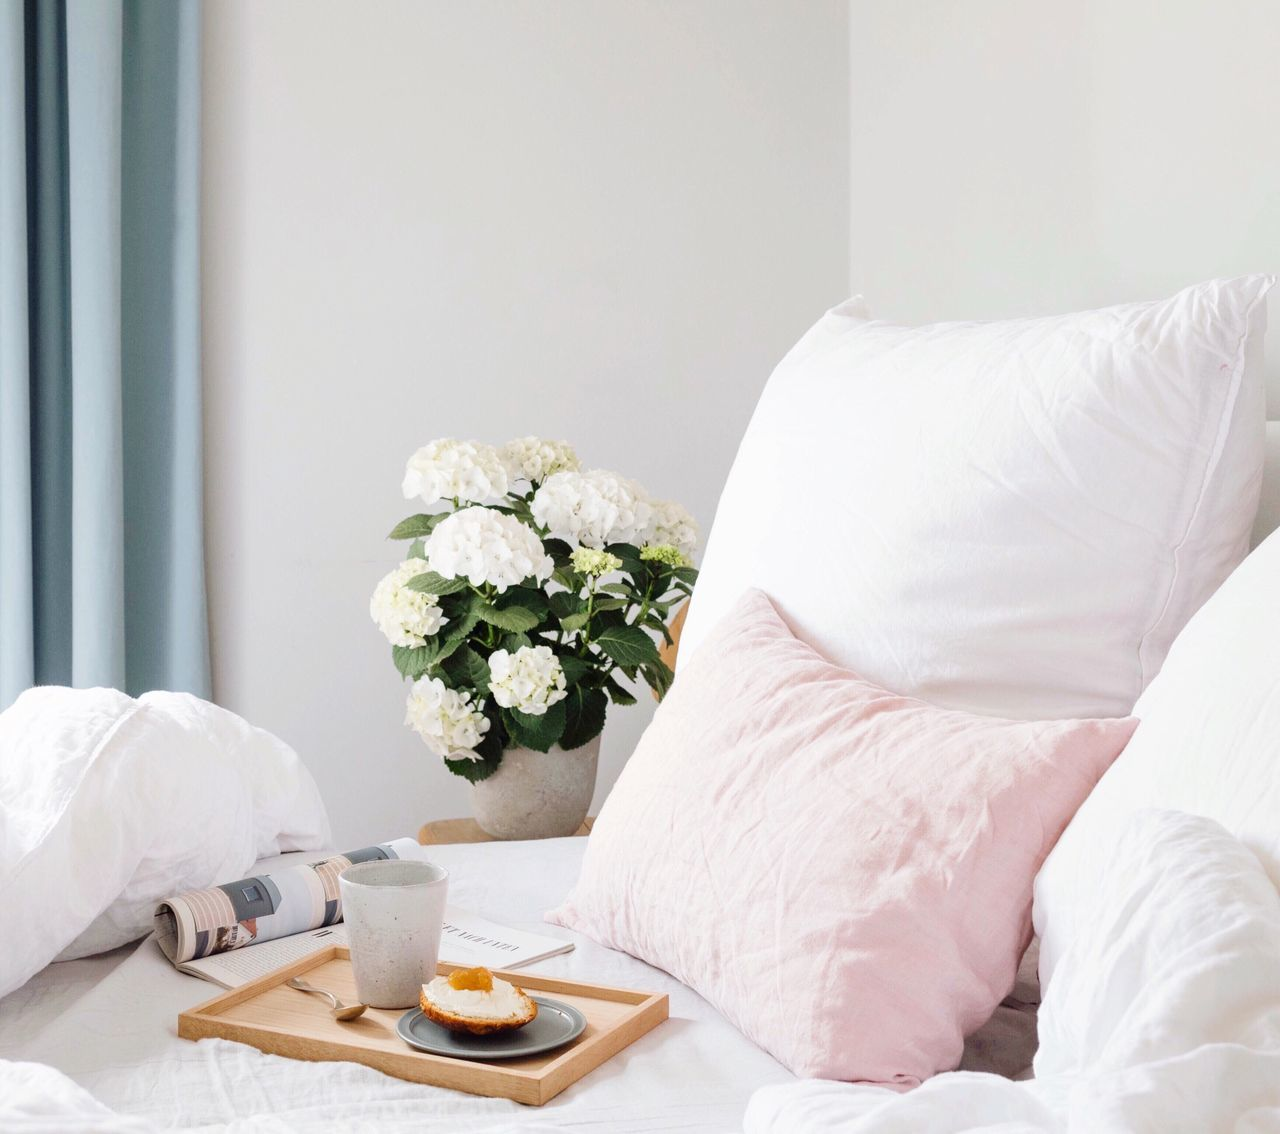 Breakfast Breakfast Time Breakfast In Bed Food And Drink Scones And Jam Linen Bedding Bedroom Bed Flower Indoors  White Color Morning Home Interior Healthy Eating Food And Drink Croissant Breakfast Domestic Life No People Cosy Slowlife Slow Day Relaxing Moments Morning Light